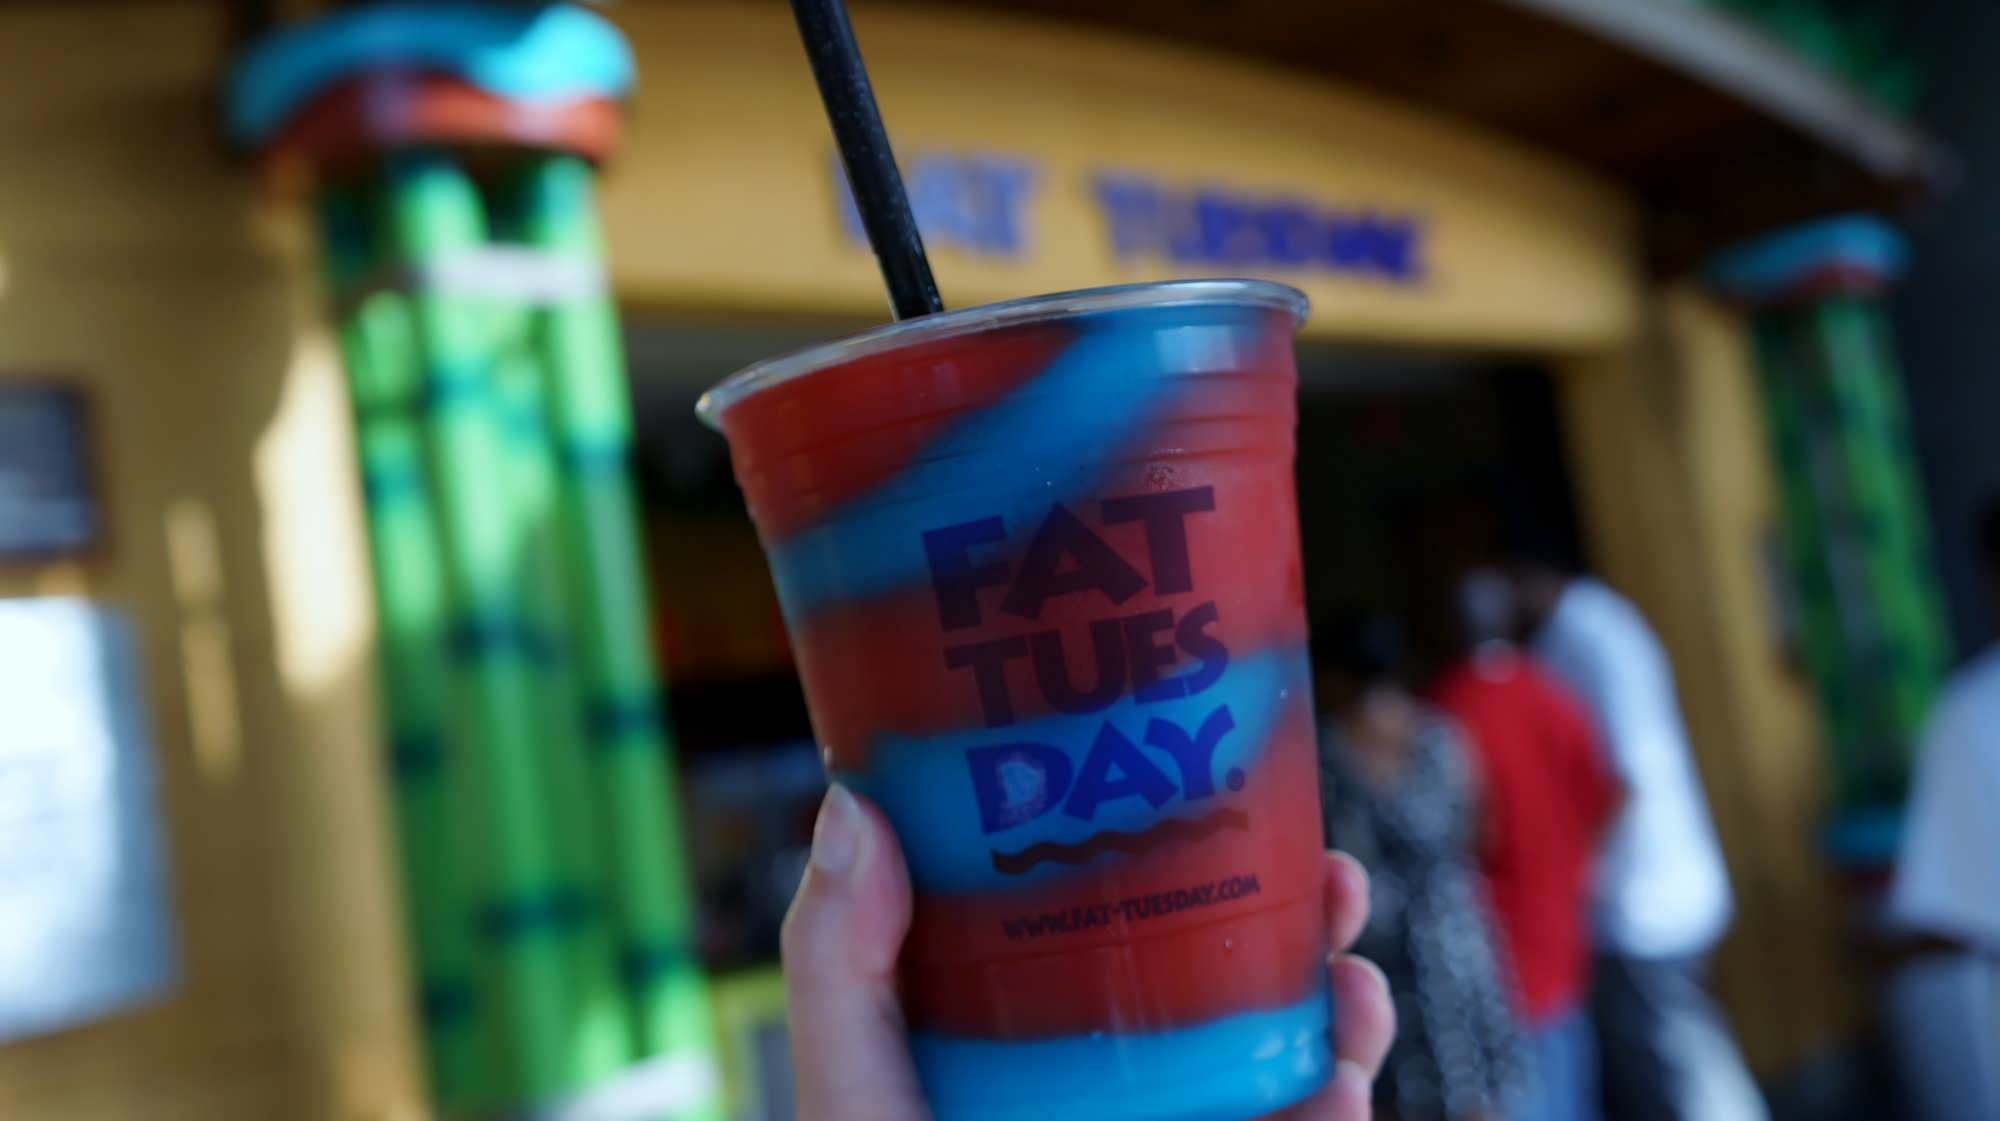 Five more of Universal's top adult beverages